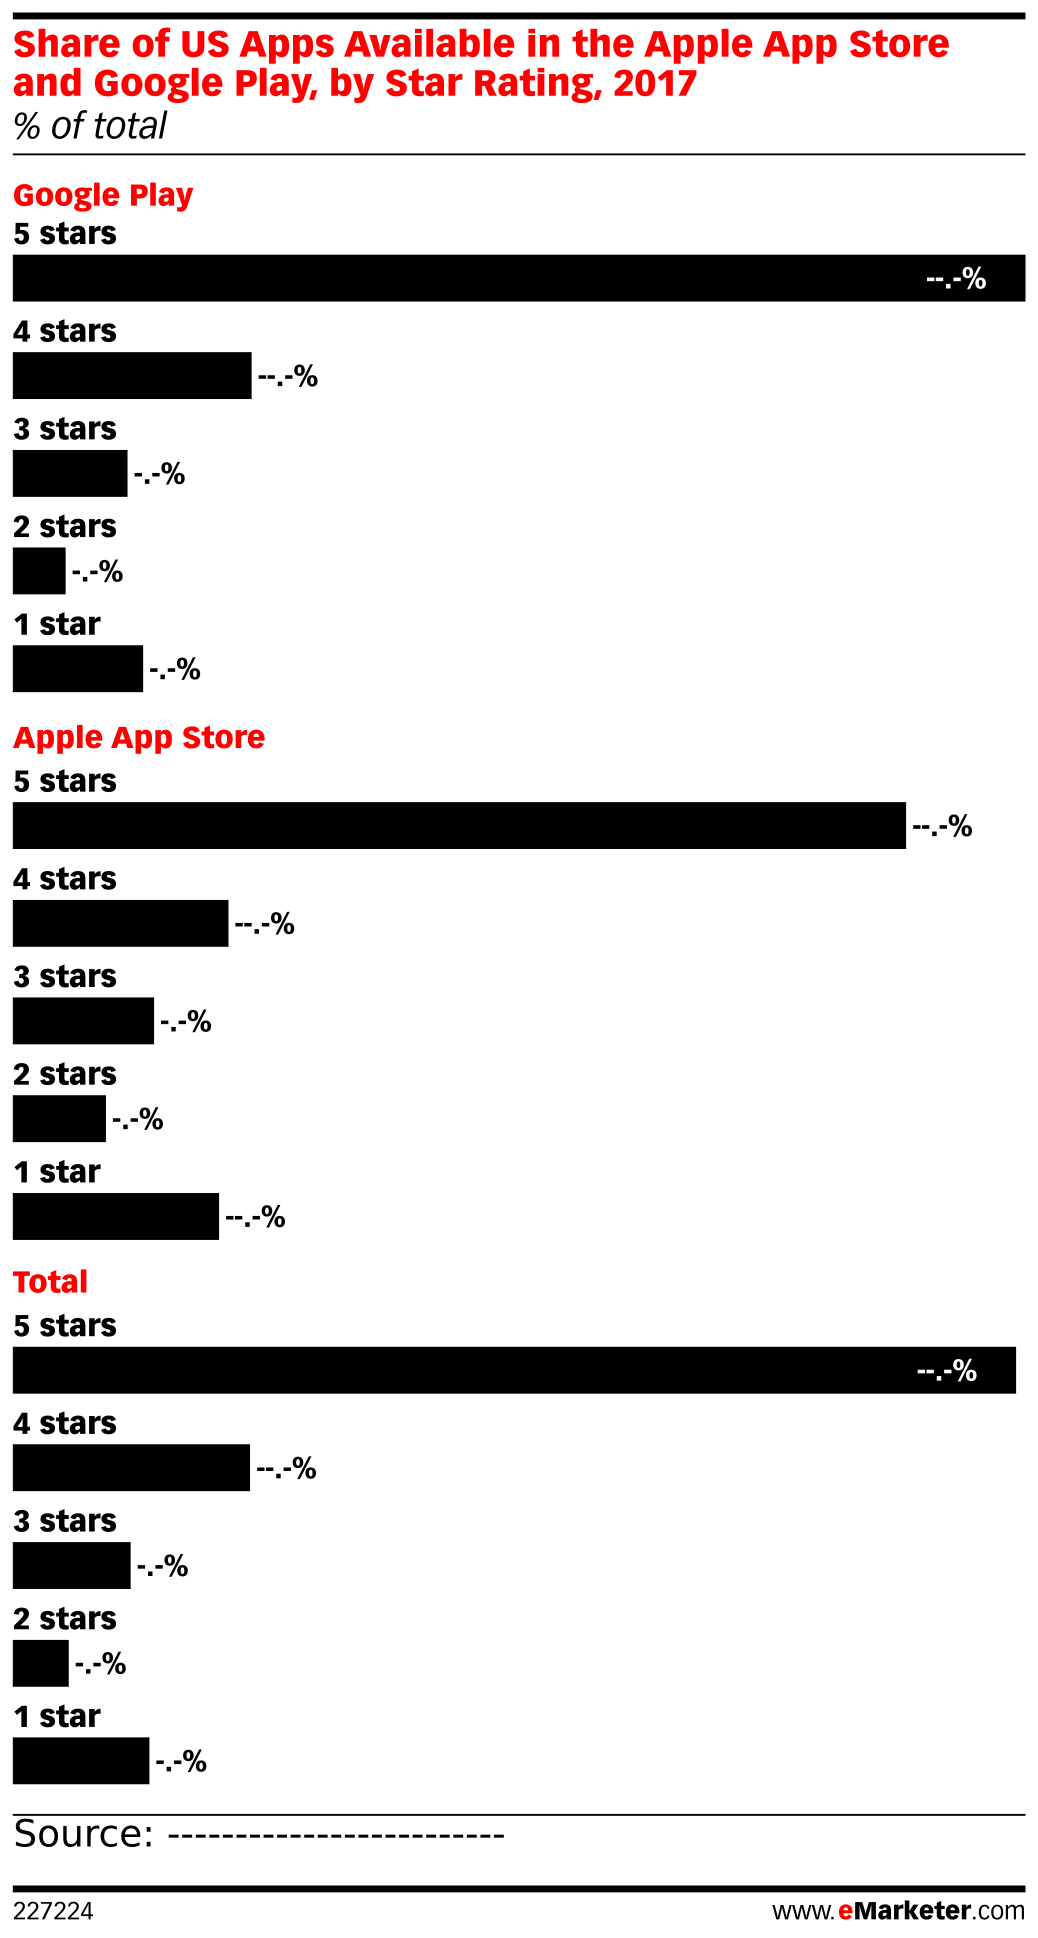 Share of US Apps Available in the Apple App Store and Google Play, by Star Rating, 2017 (% of total)